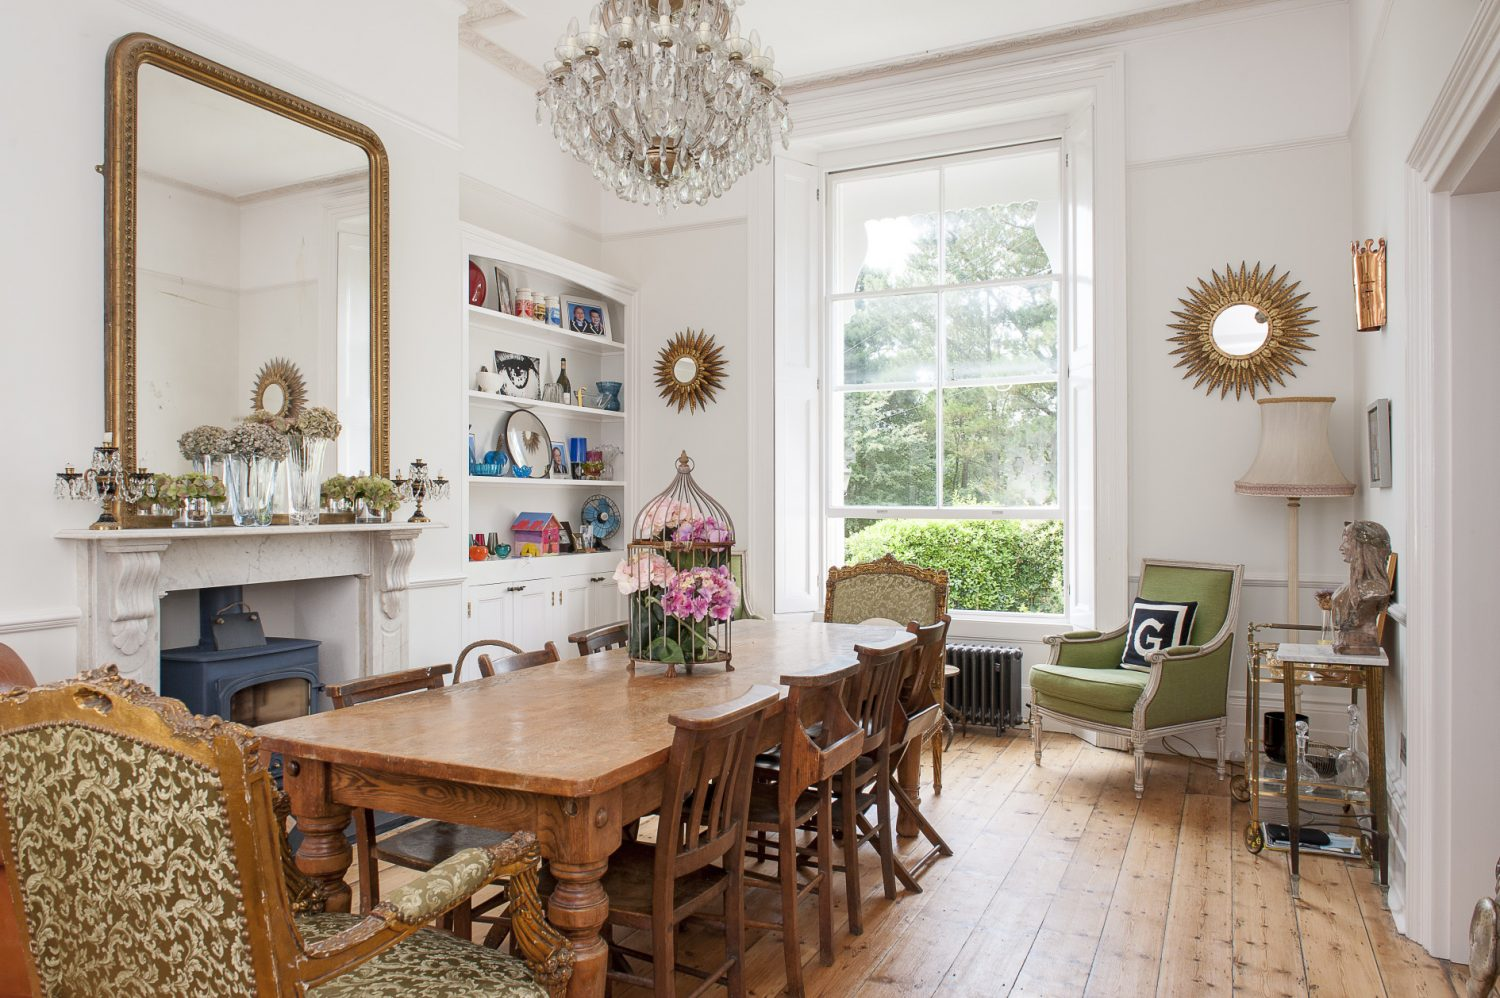 In the dining room, Louise has opted for a big oak runway of a refectory table surrounded by an eclectic collection of chapel chairs. Over the table is another impressive chandelier and over the white marble fireplace is set a large Louis Philippe mirror